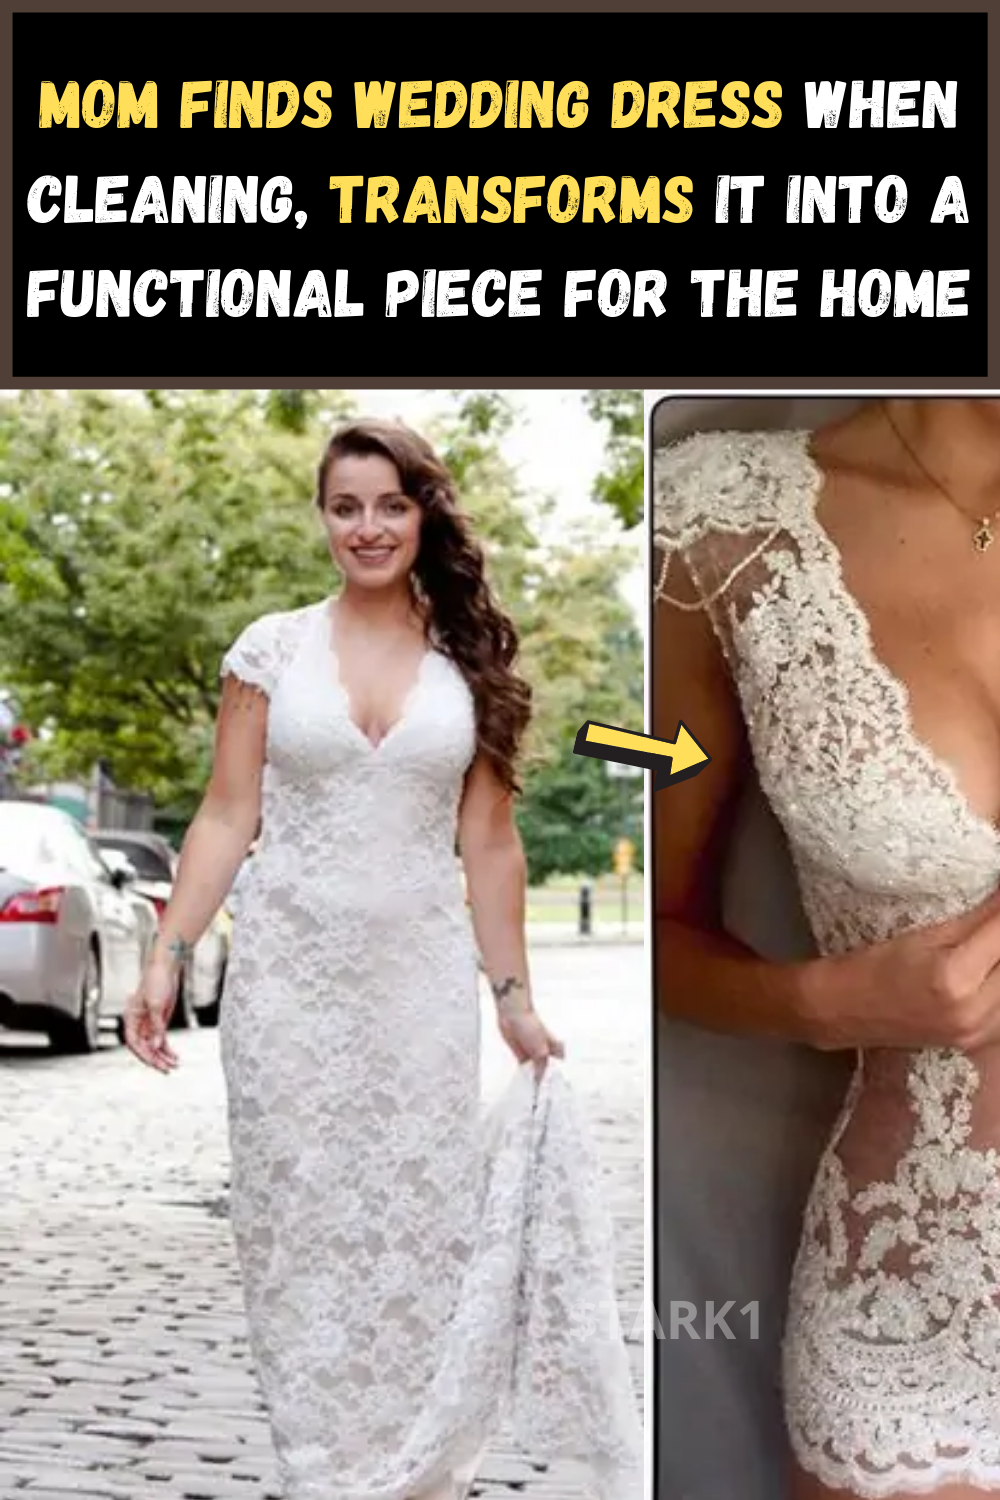 Mom Finds Wedding Dress When Cleaning Transforms It Into A Functional Piece For The Home In 2020 Find Wedding Dress Fashion Wedding Dresses